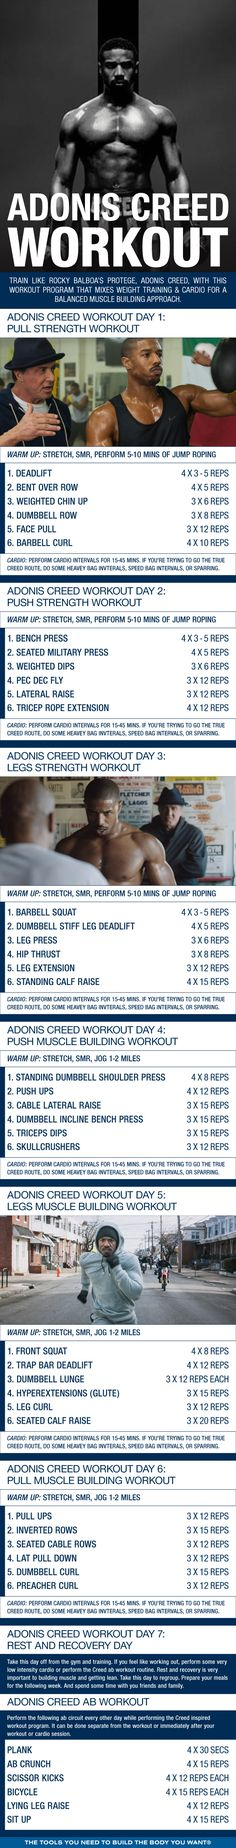 (Click through to download PDF!) Train like Rocky Balboa's protege, Adonis Creed, with this workout program that mixes weight training & cardio for a balanced muscle building approach #Rocky #Creed #MichaelBJordan #Workout #Gym #Boxing #Physique